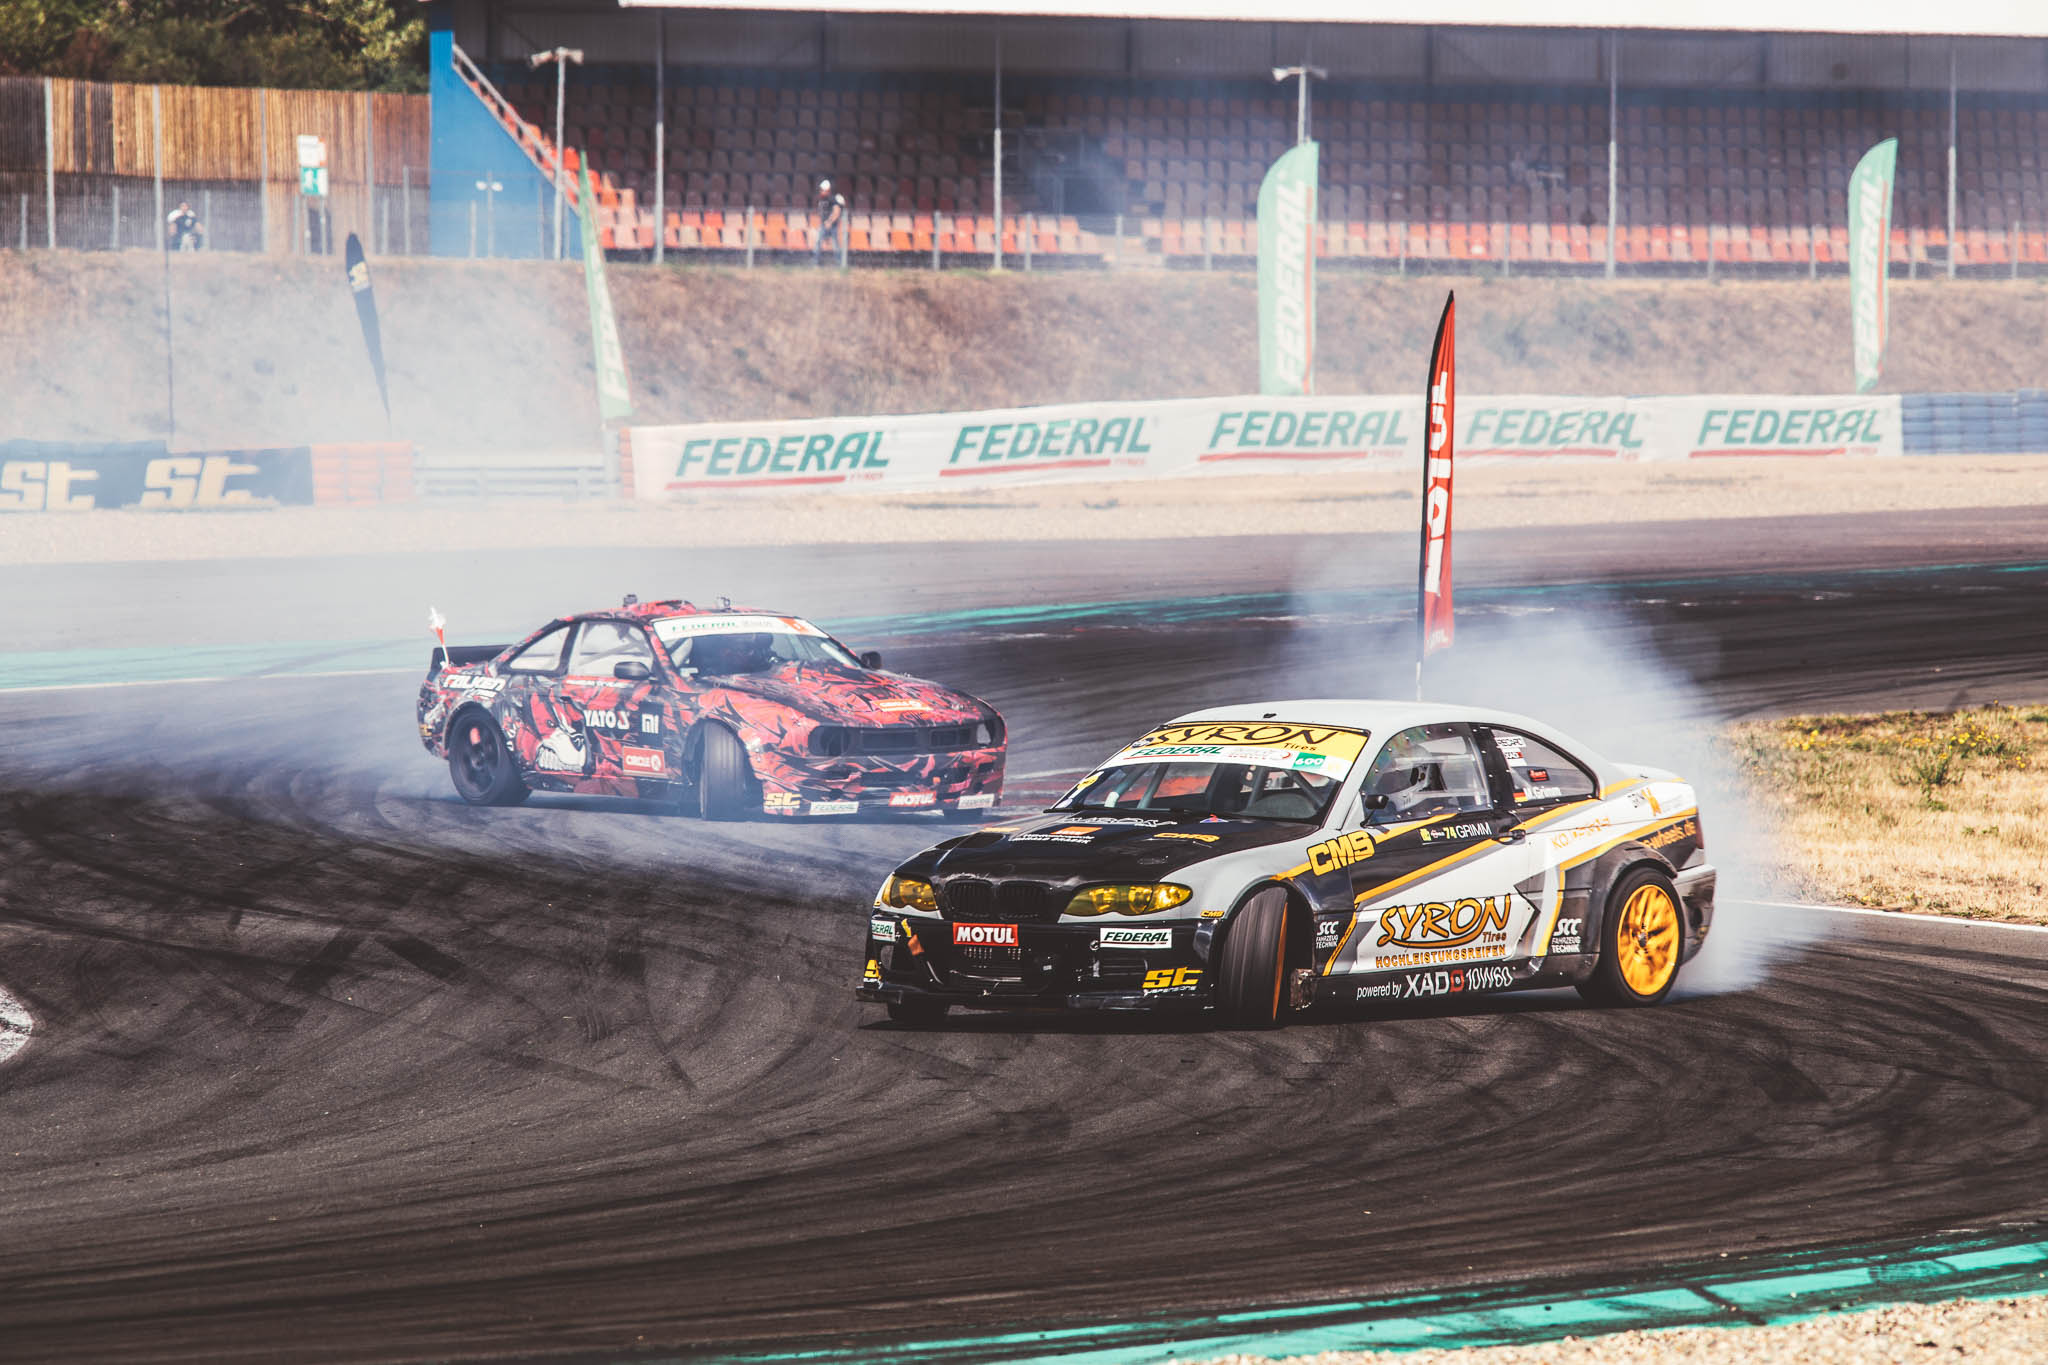 Drifting might be one of the most popular motorsports in Europe. Why do you think it's so popular?